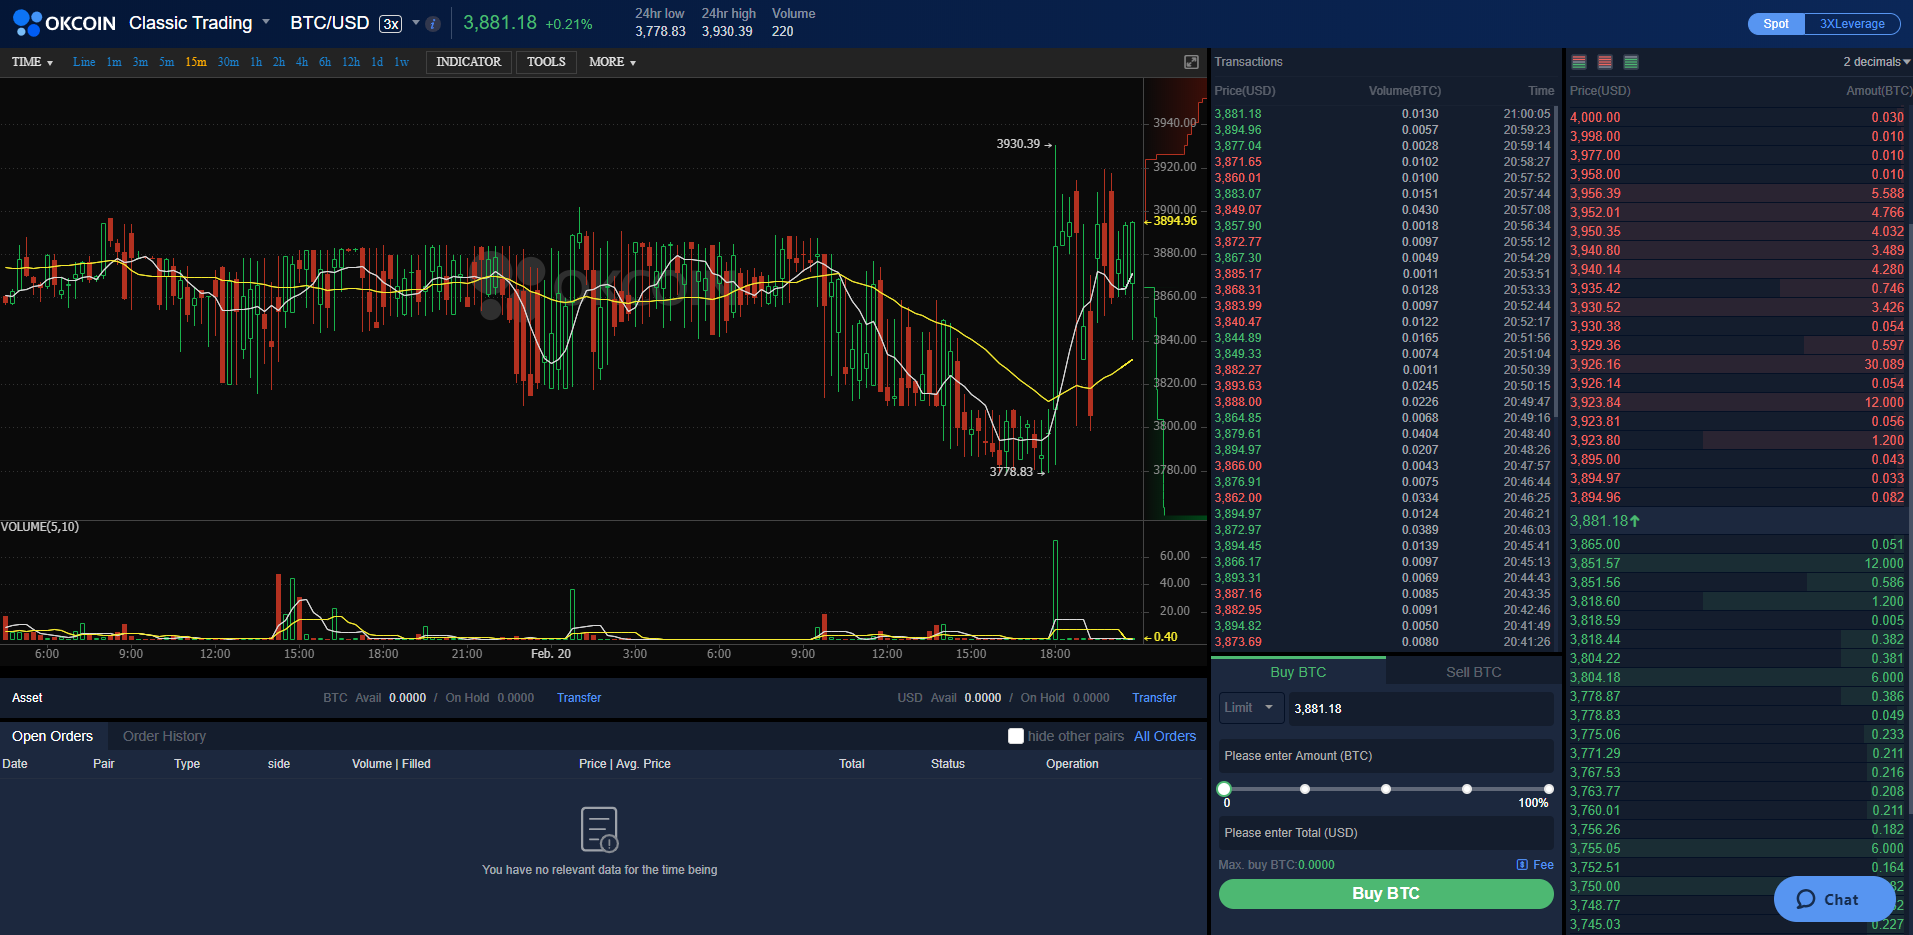 OKCoin Trading View